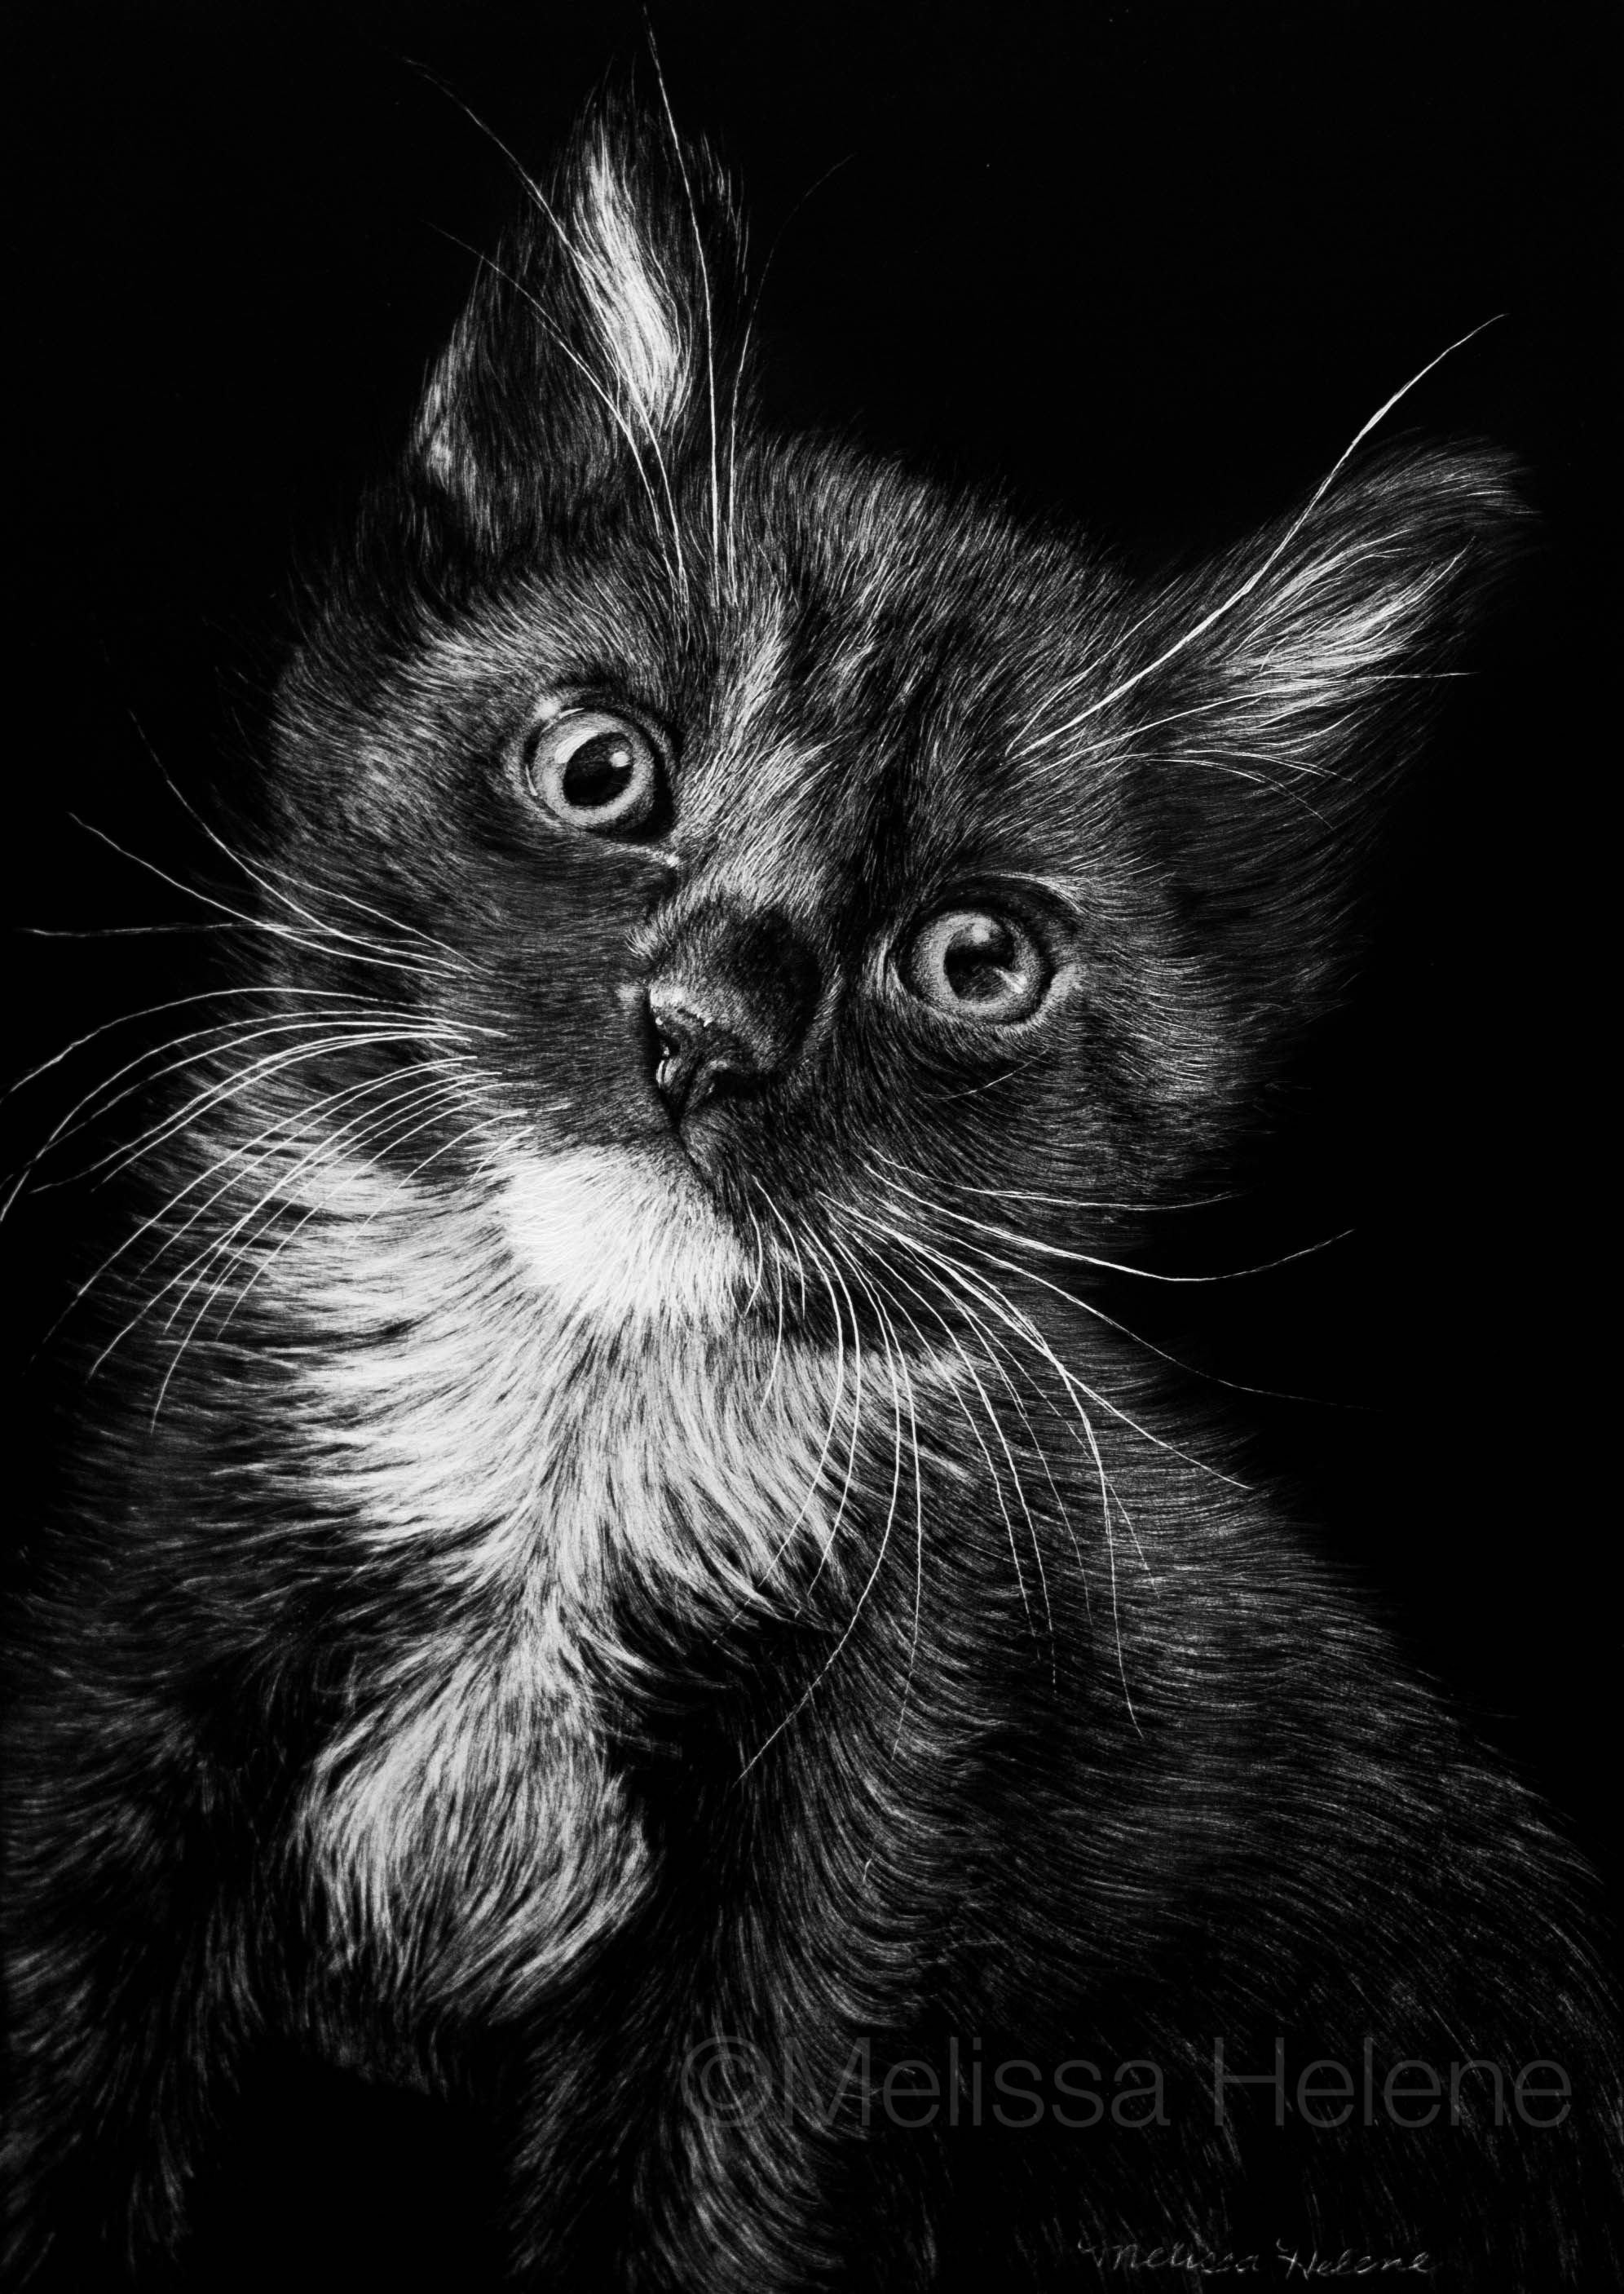 Wildlife Scratchboard Artwork Portrait Photography Of Melissa Helene Central WI Based Is Currently Taking Commissions New